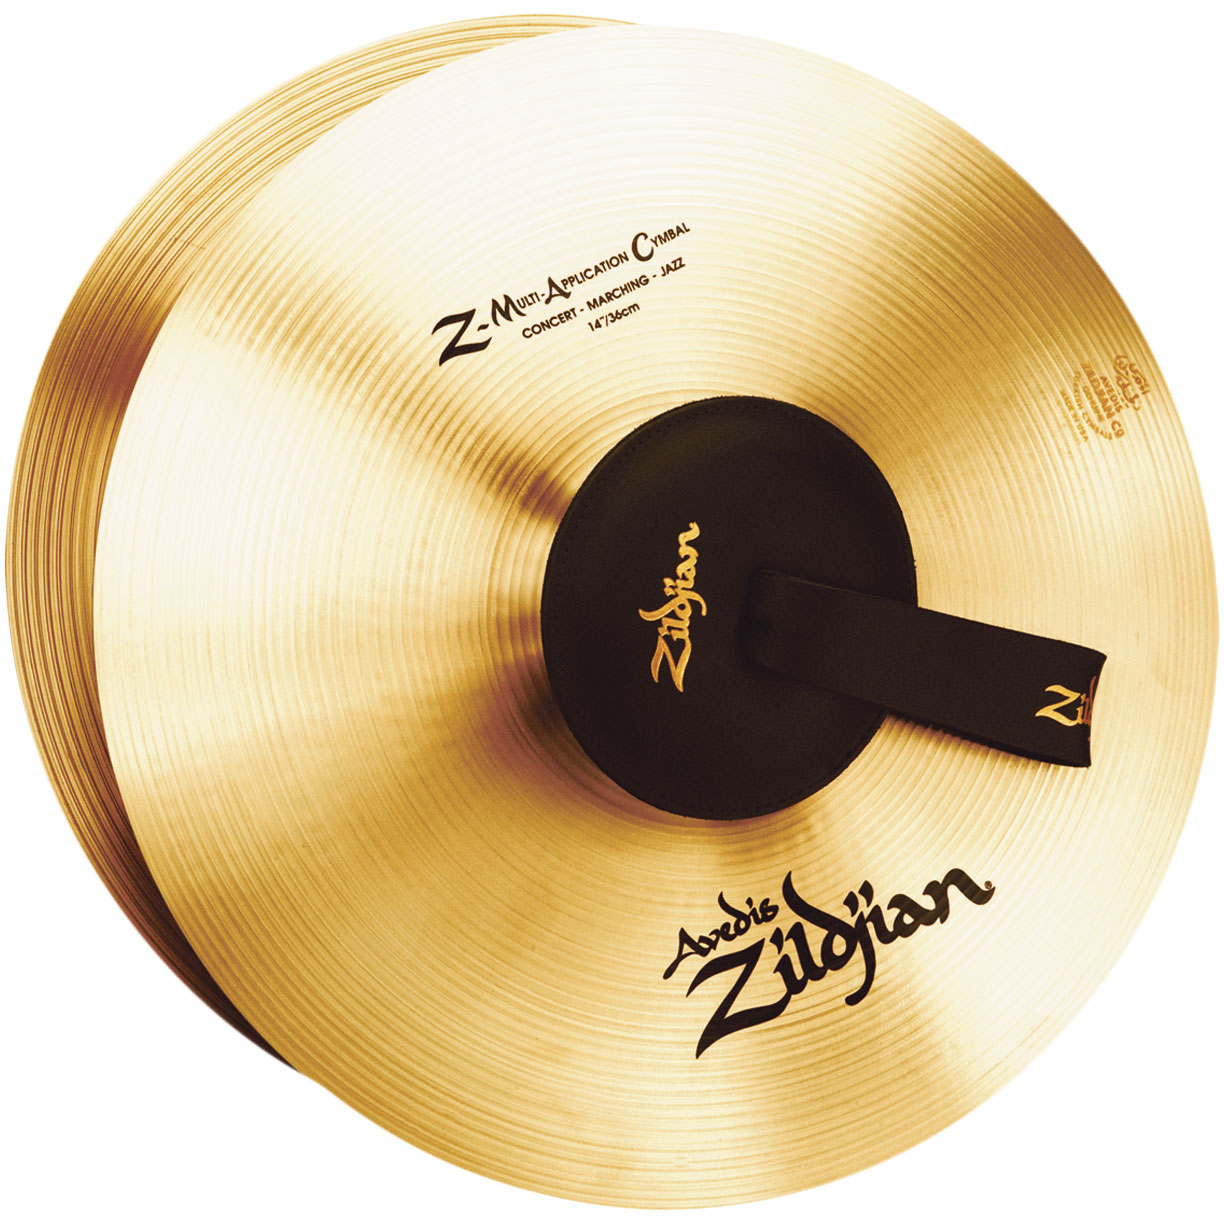 "Zildjian 14"" Z-Mac Crash Cymbal Pair"